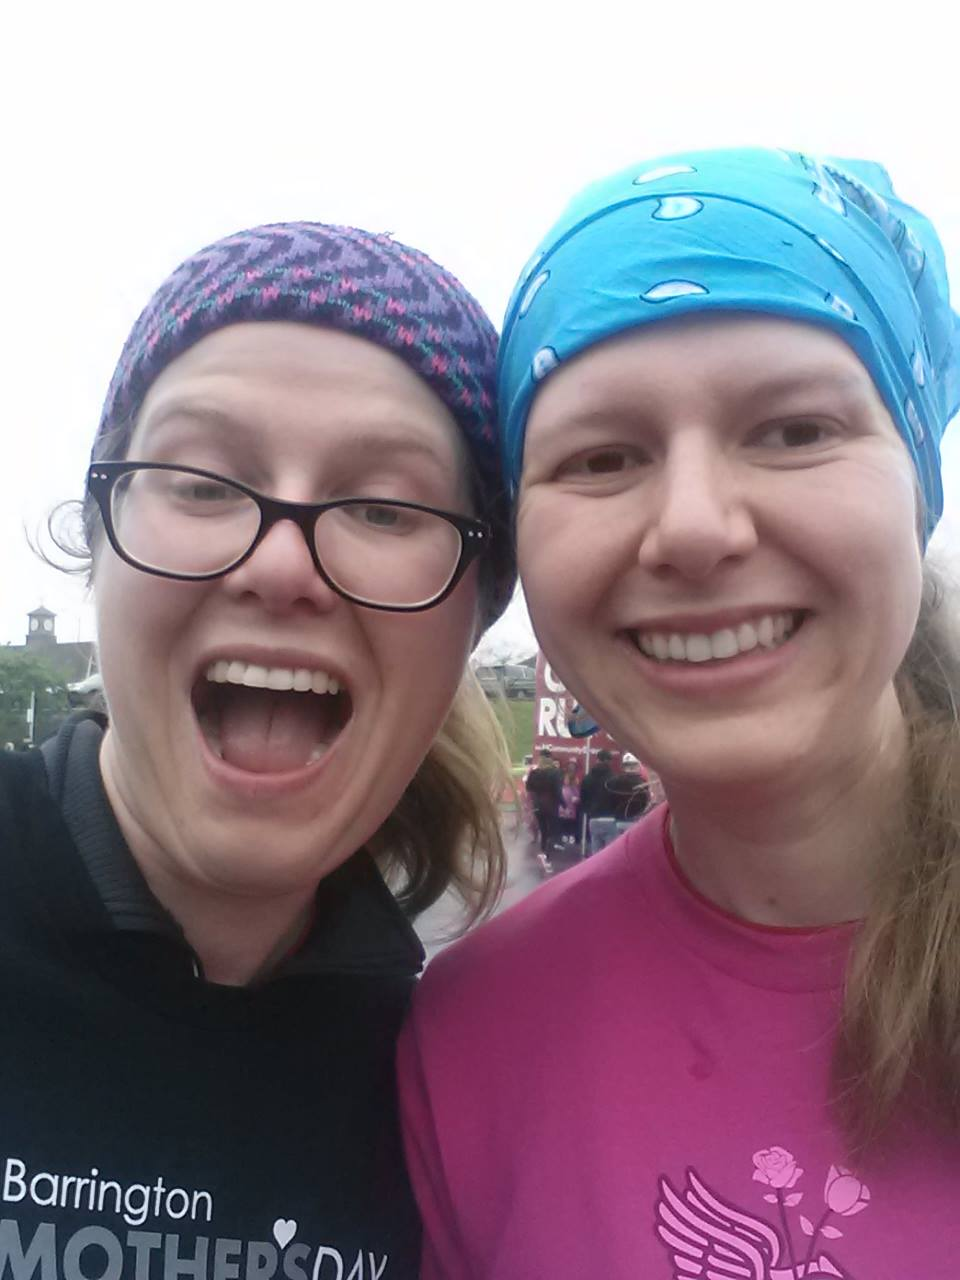 Me and my sister after a race. Sorry sis, it's a much better picture of me than you. You can use bad pictures of me for your blog. Oh wait. You don't have one. Photo credit: Susan B. Slamthony